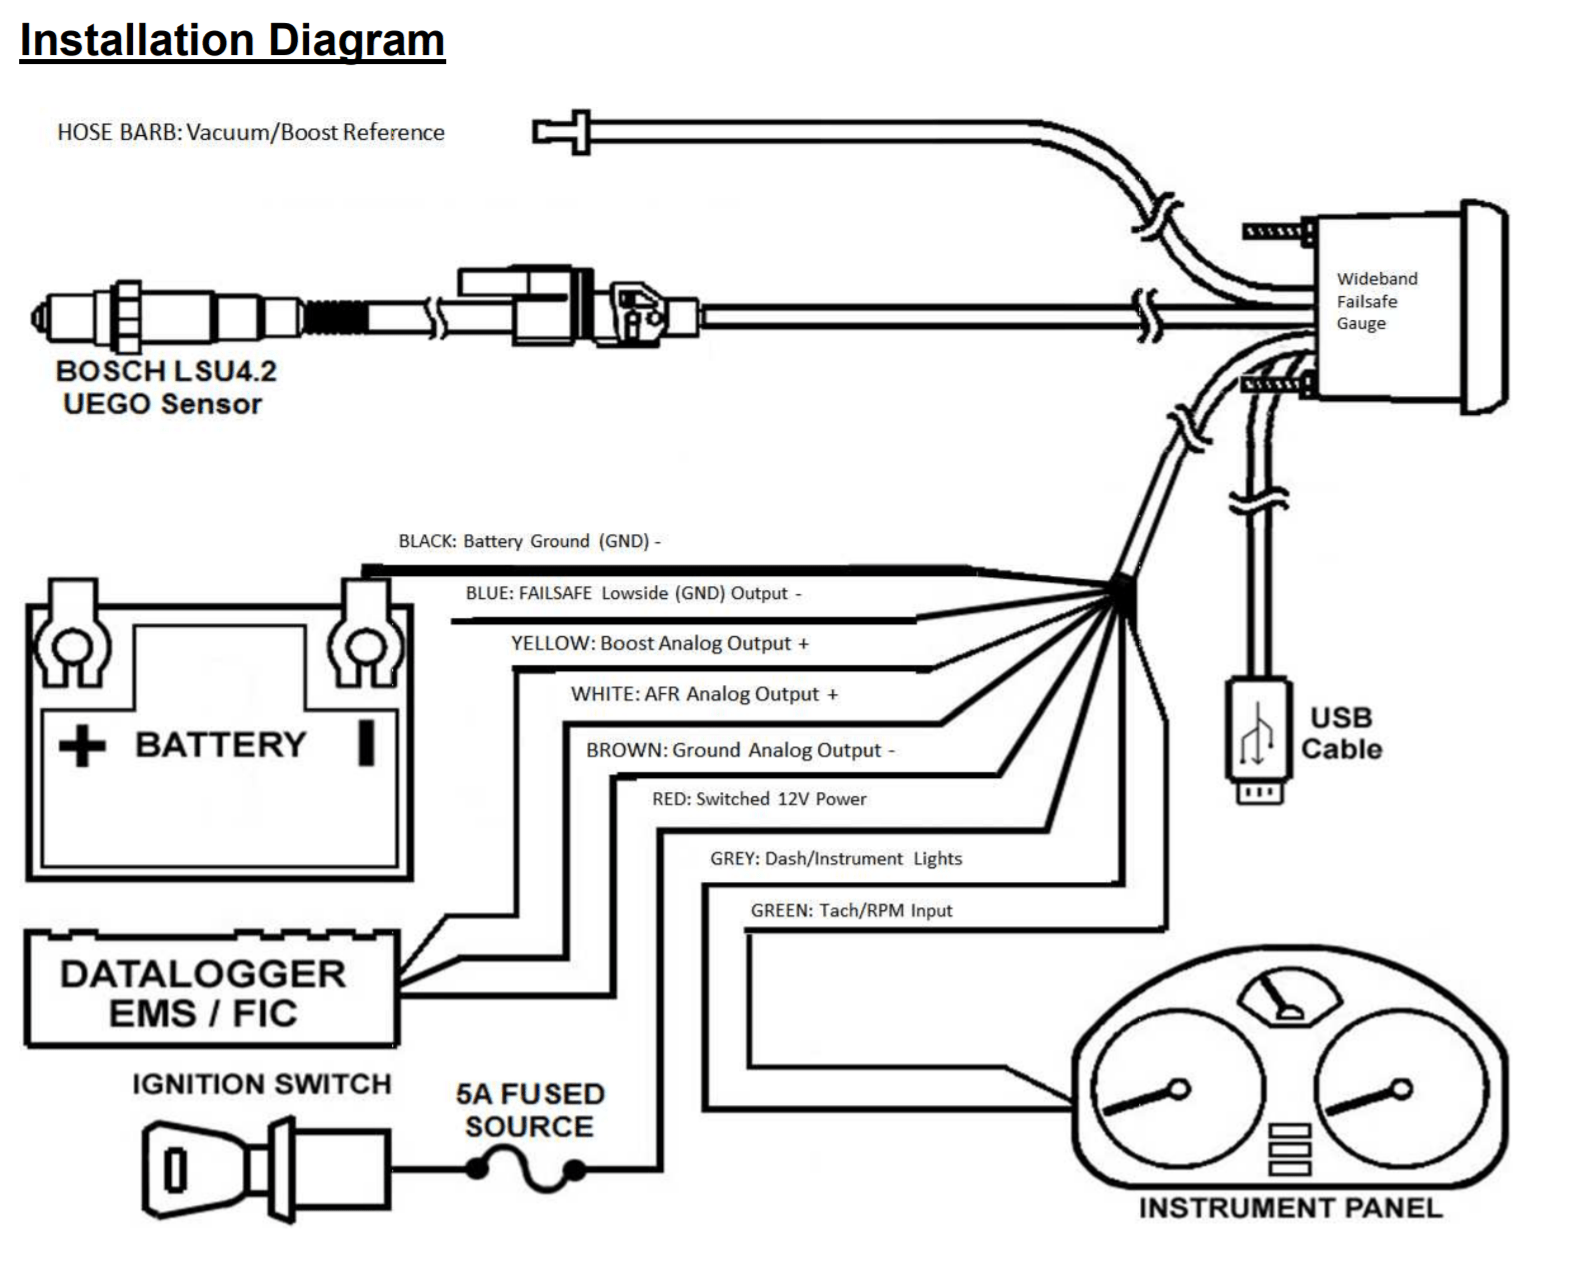 Glowshift Wideband Afr Wiring Diagram. Dorman Wiring